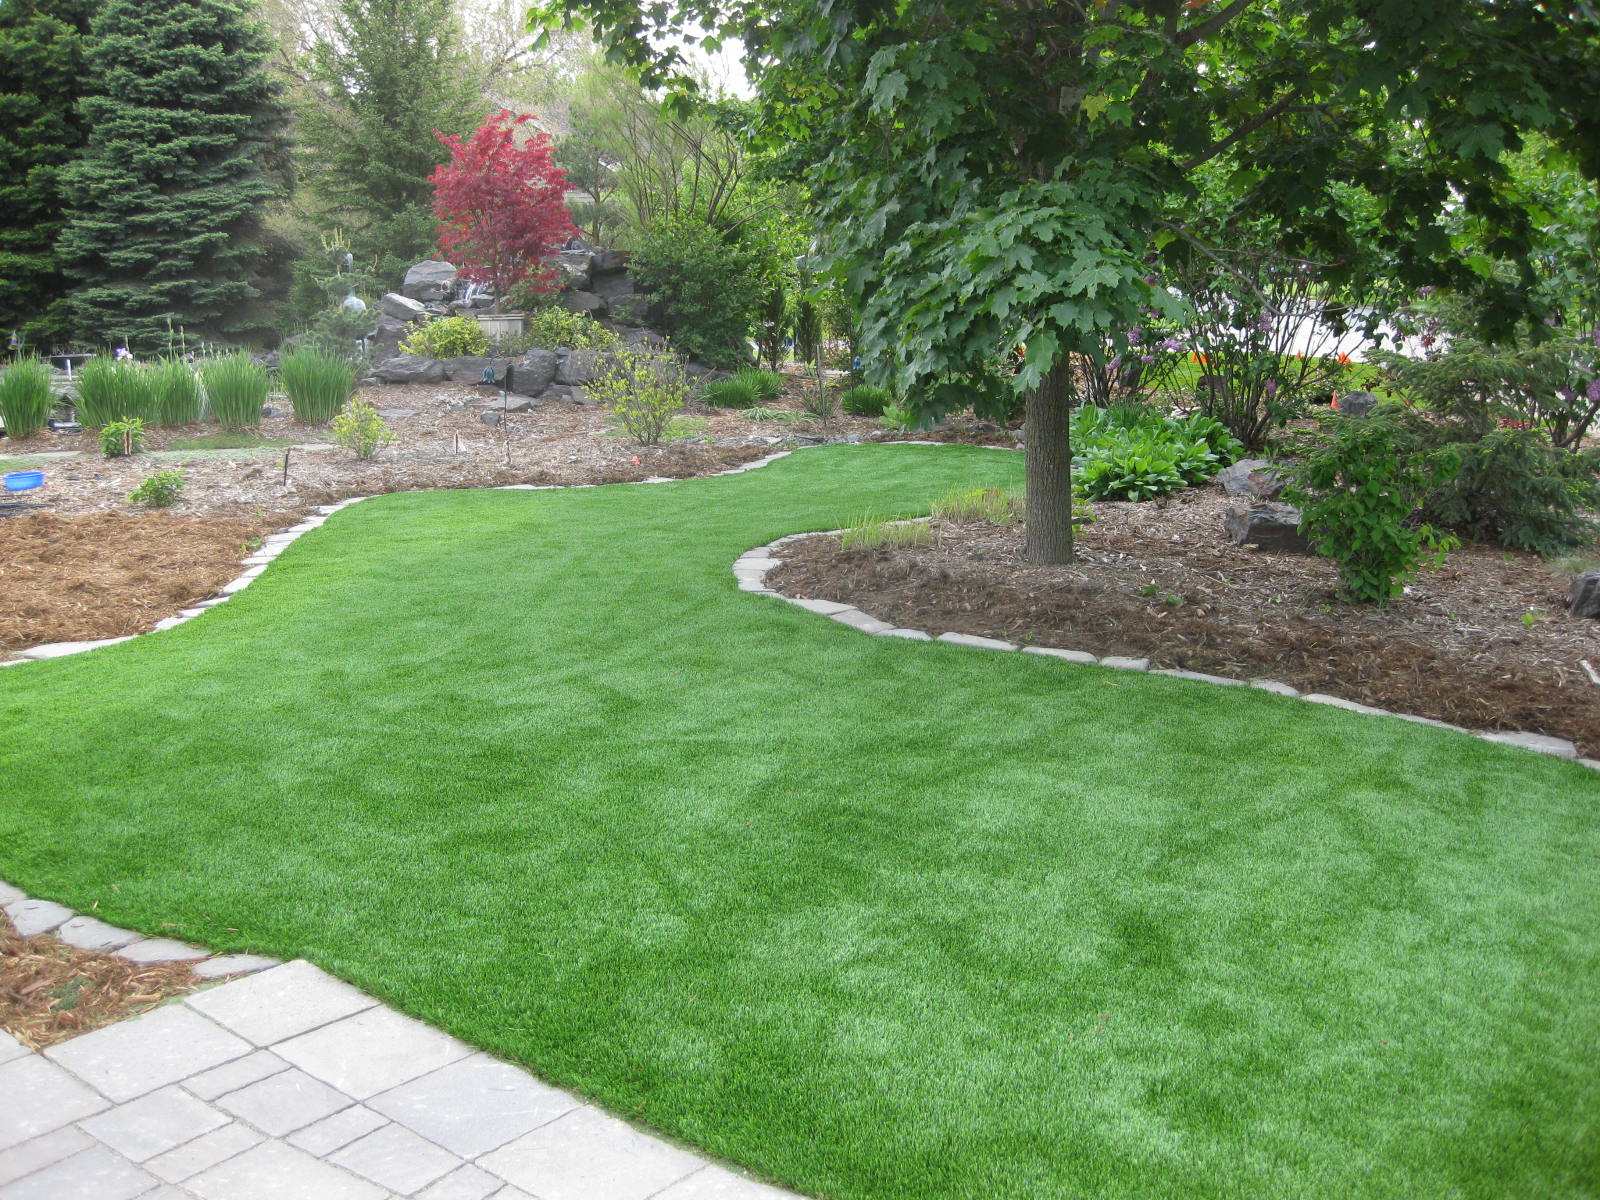 Artificial turf backyard Rock Xgrass Artificial Grass Lawns Remain Lush Vibrate And Professionally Manicured Throughout The Year Allgreen Artificial Grass Tour Greens Michigan Installer Of Xgrass Artificial Grass Lawns Turf